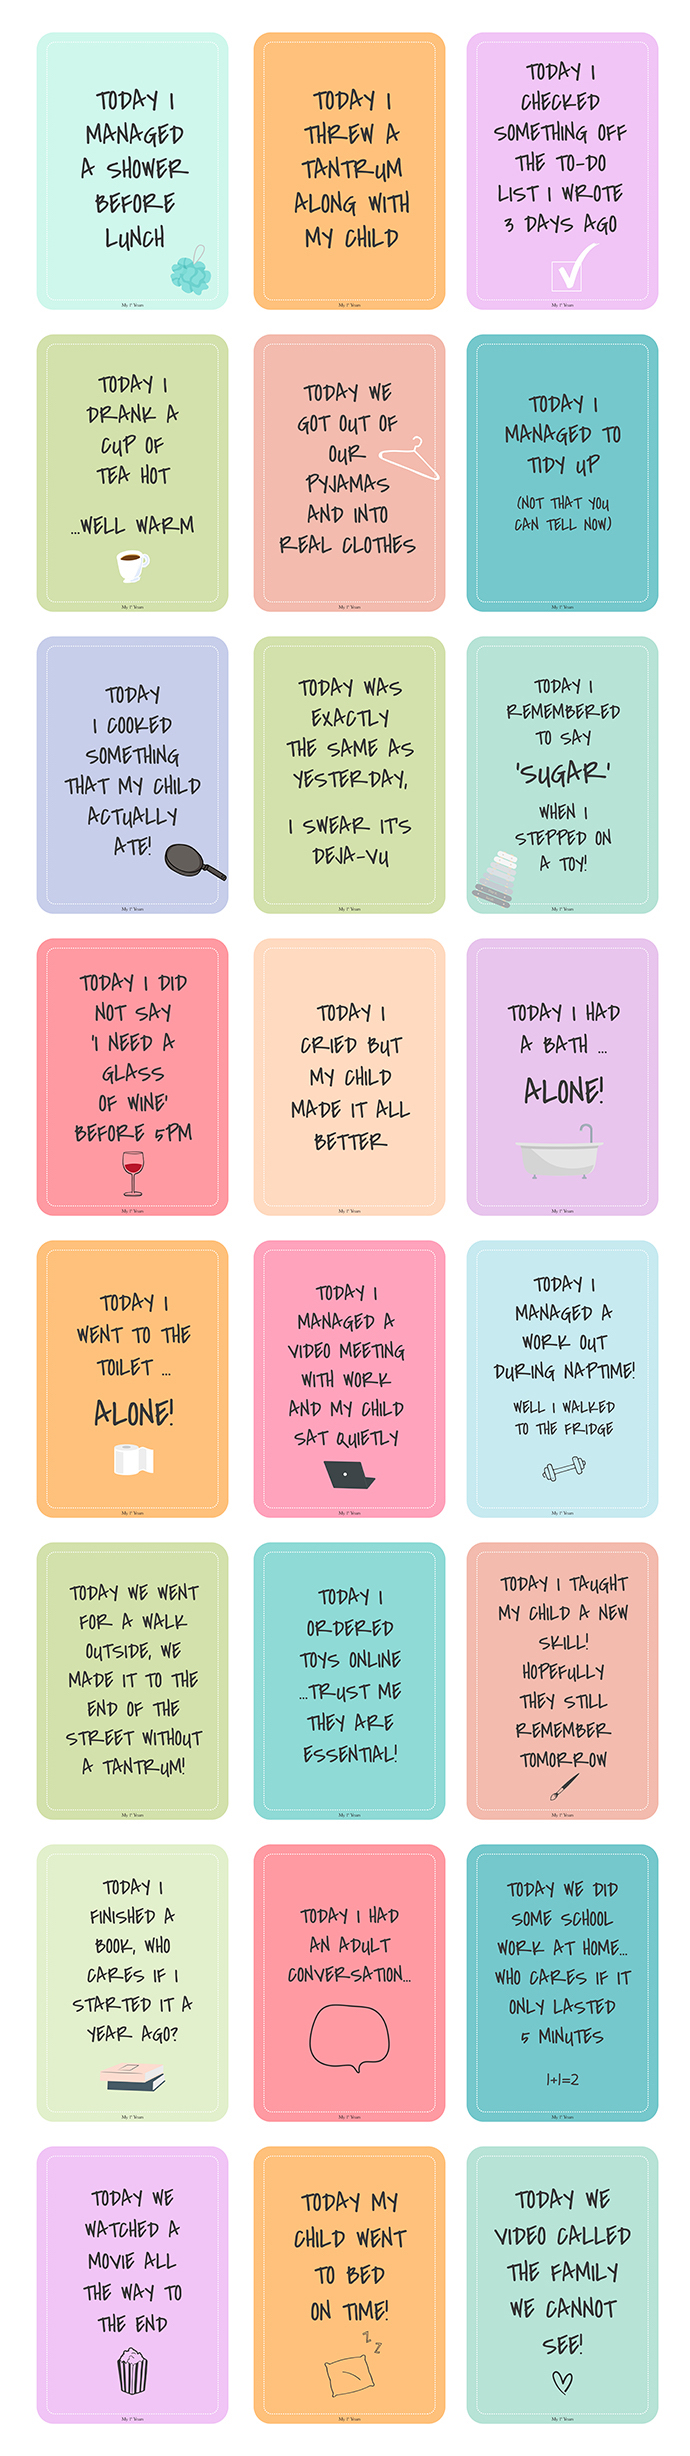 parenting_milestone_cards_all_w690px